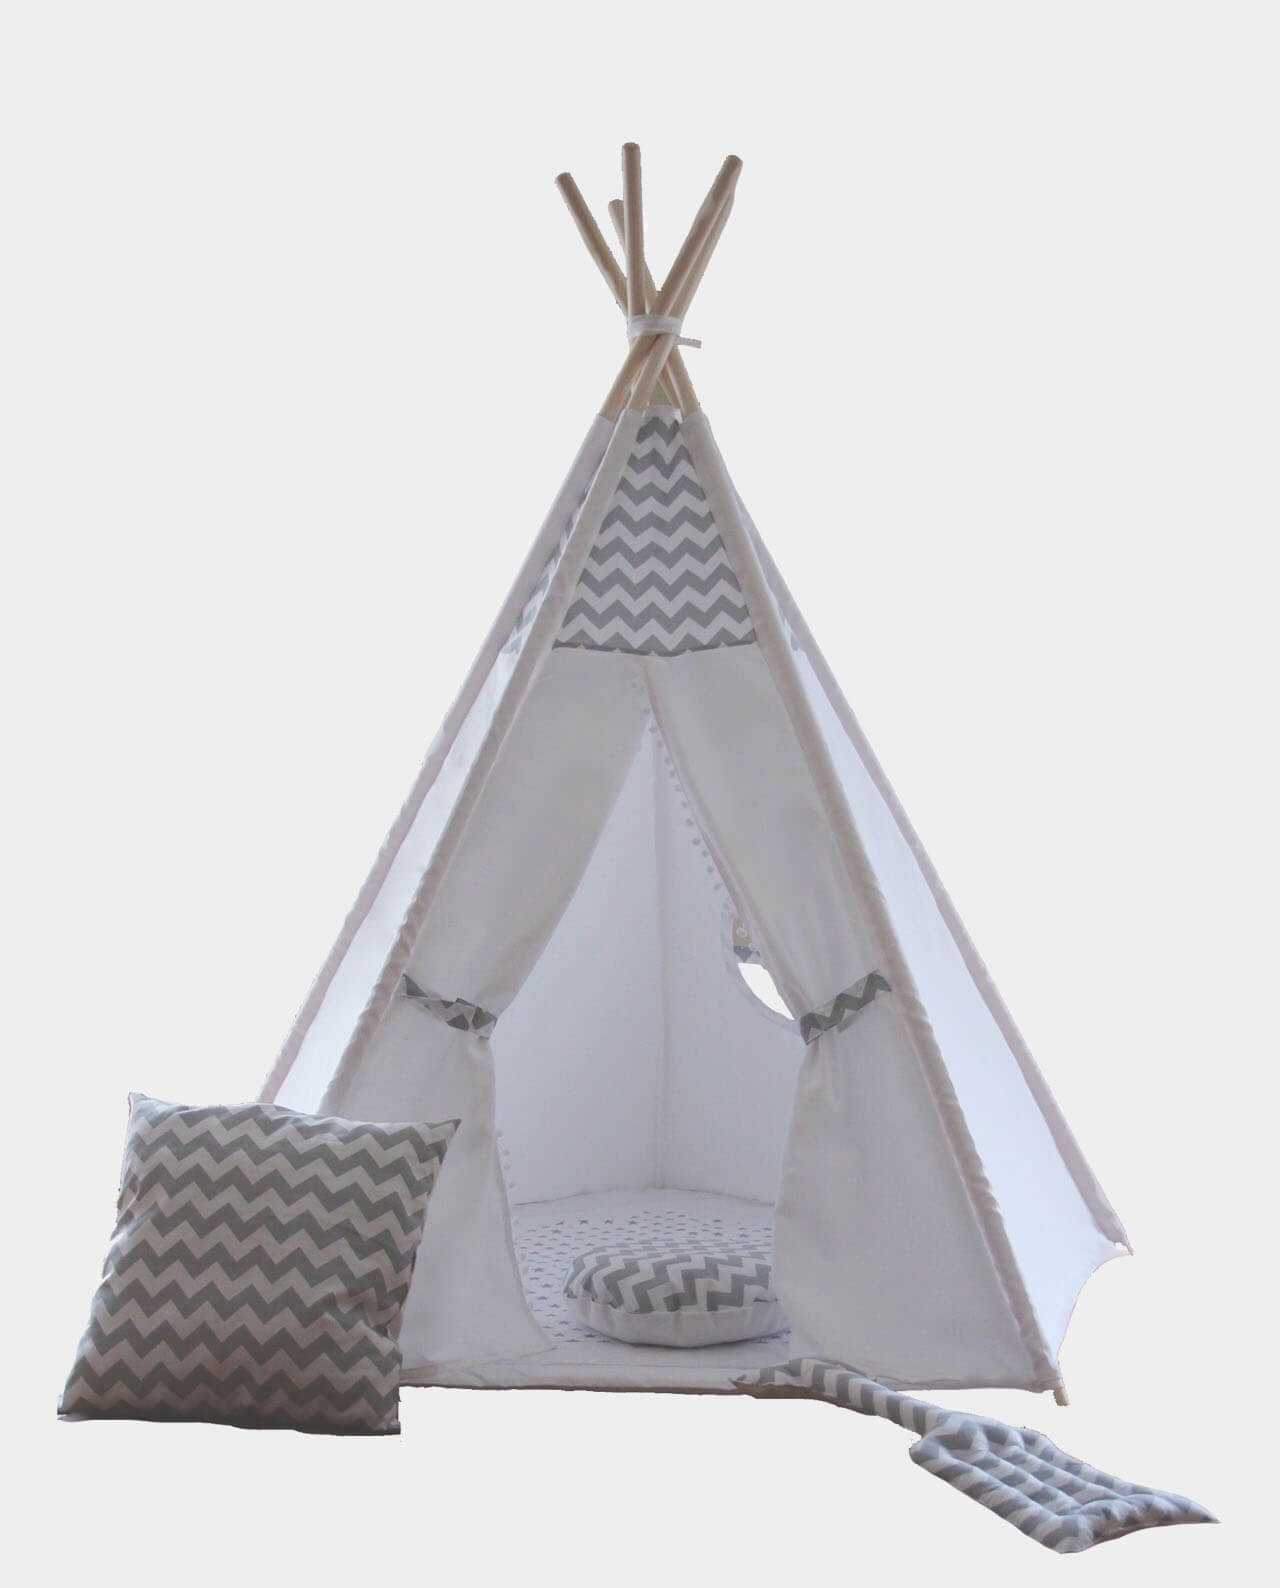 tipi kinderzelt kimama jetzt online kaufen. Black Bedroom Furniture Sets. Home Design Ideas